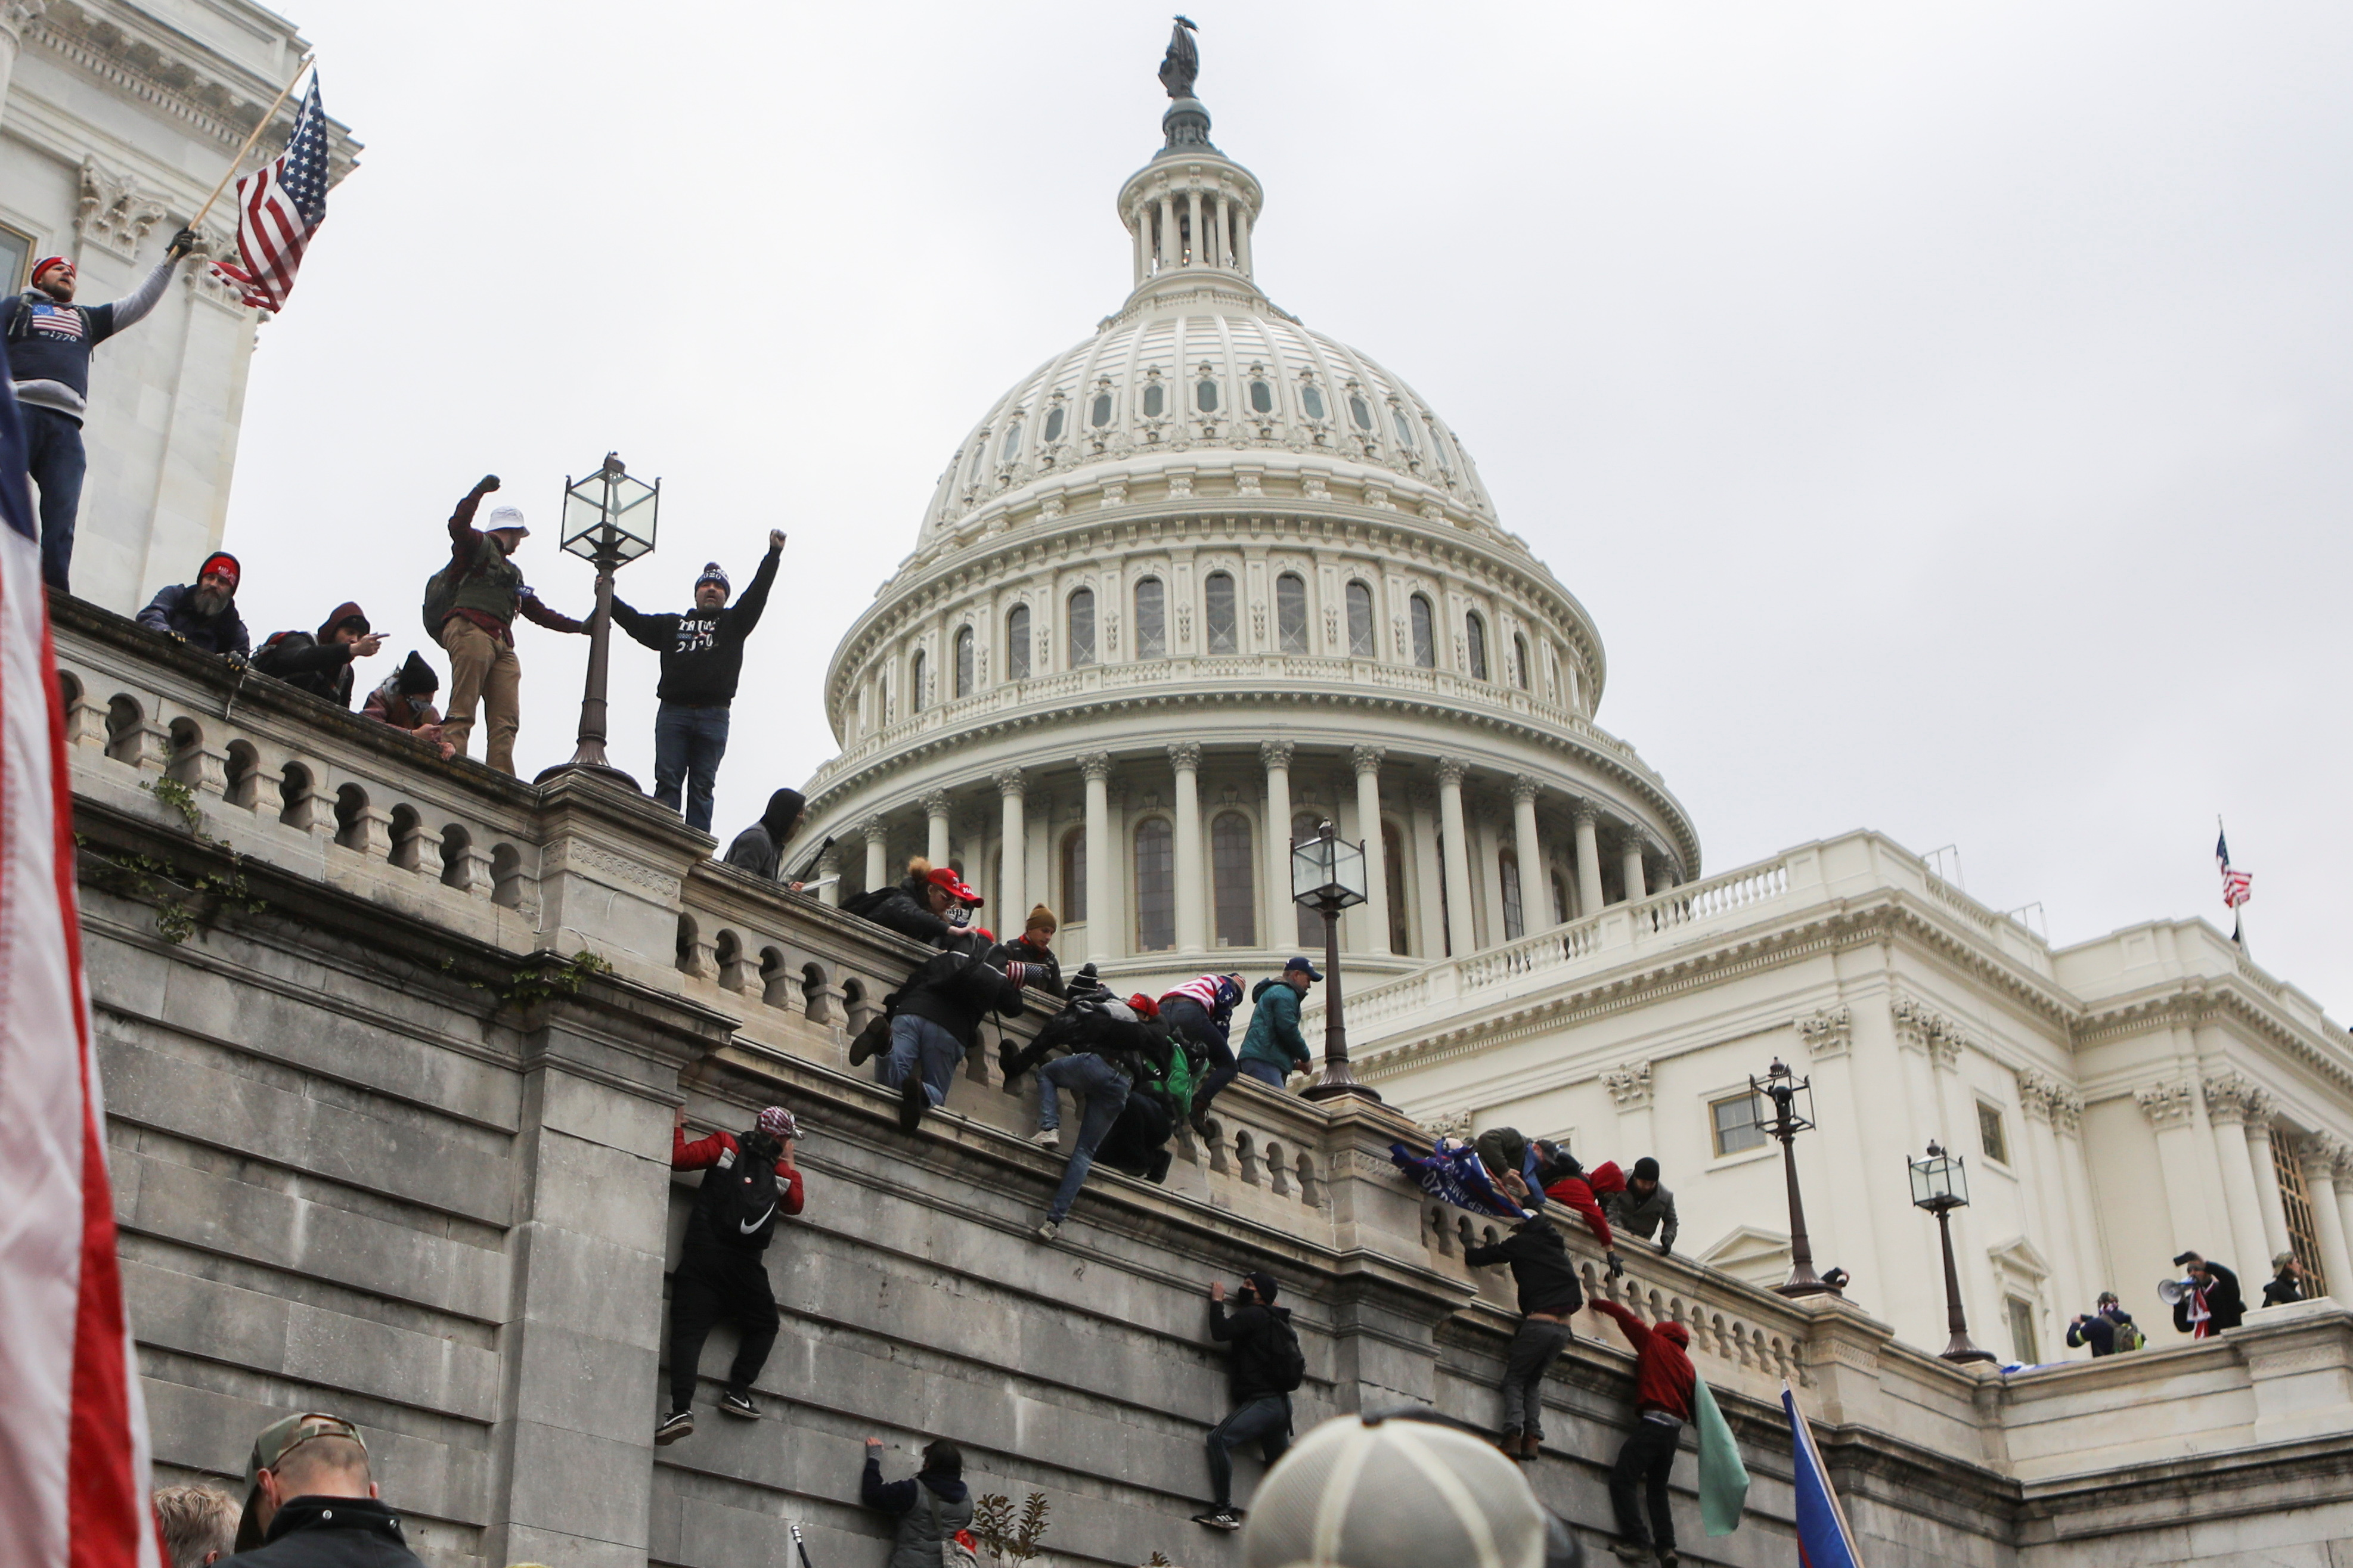 Supporters of U.S. President Donald Trump climb on walls at the U.S. Capitol during a protest against the certification of the 2020 U.S. presidential election results by the U.S. Congress, in Washington, U.S., January 6, 2021. REUTERS/Jim Urquhart